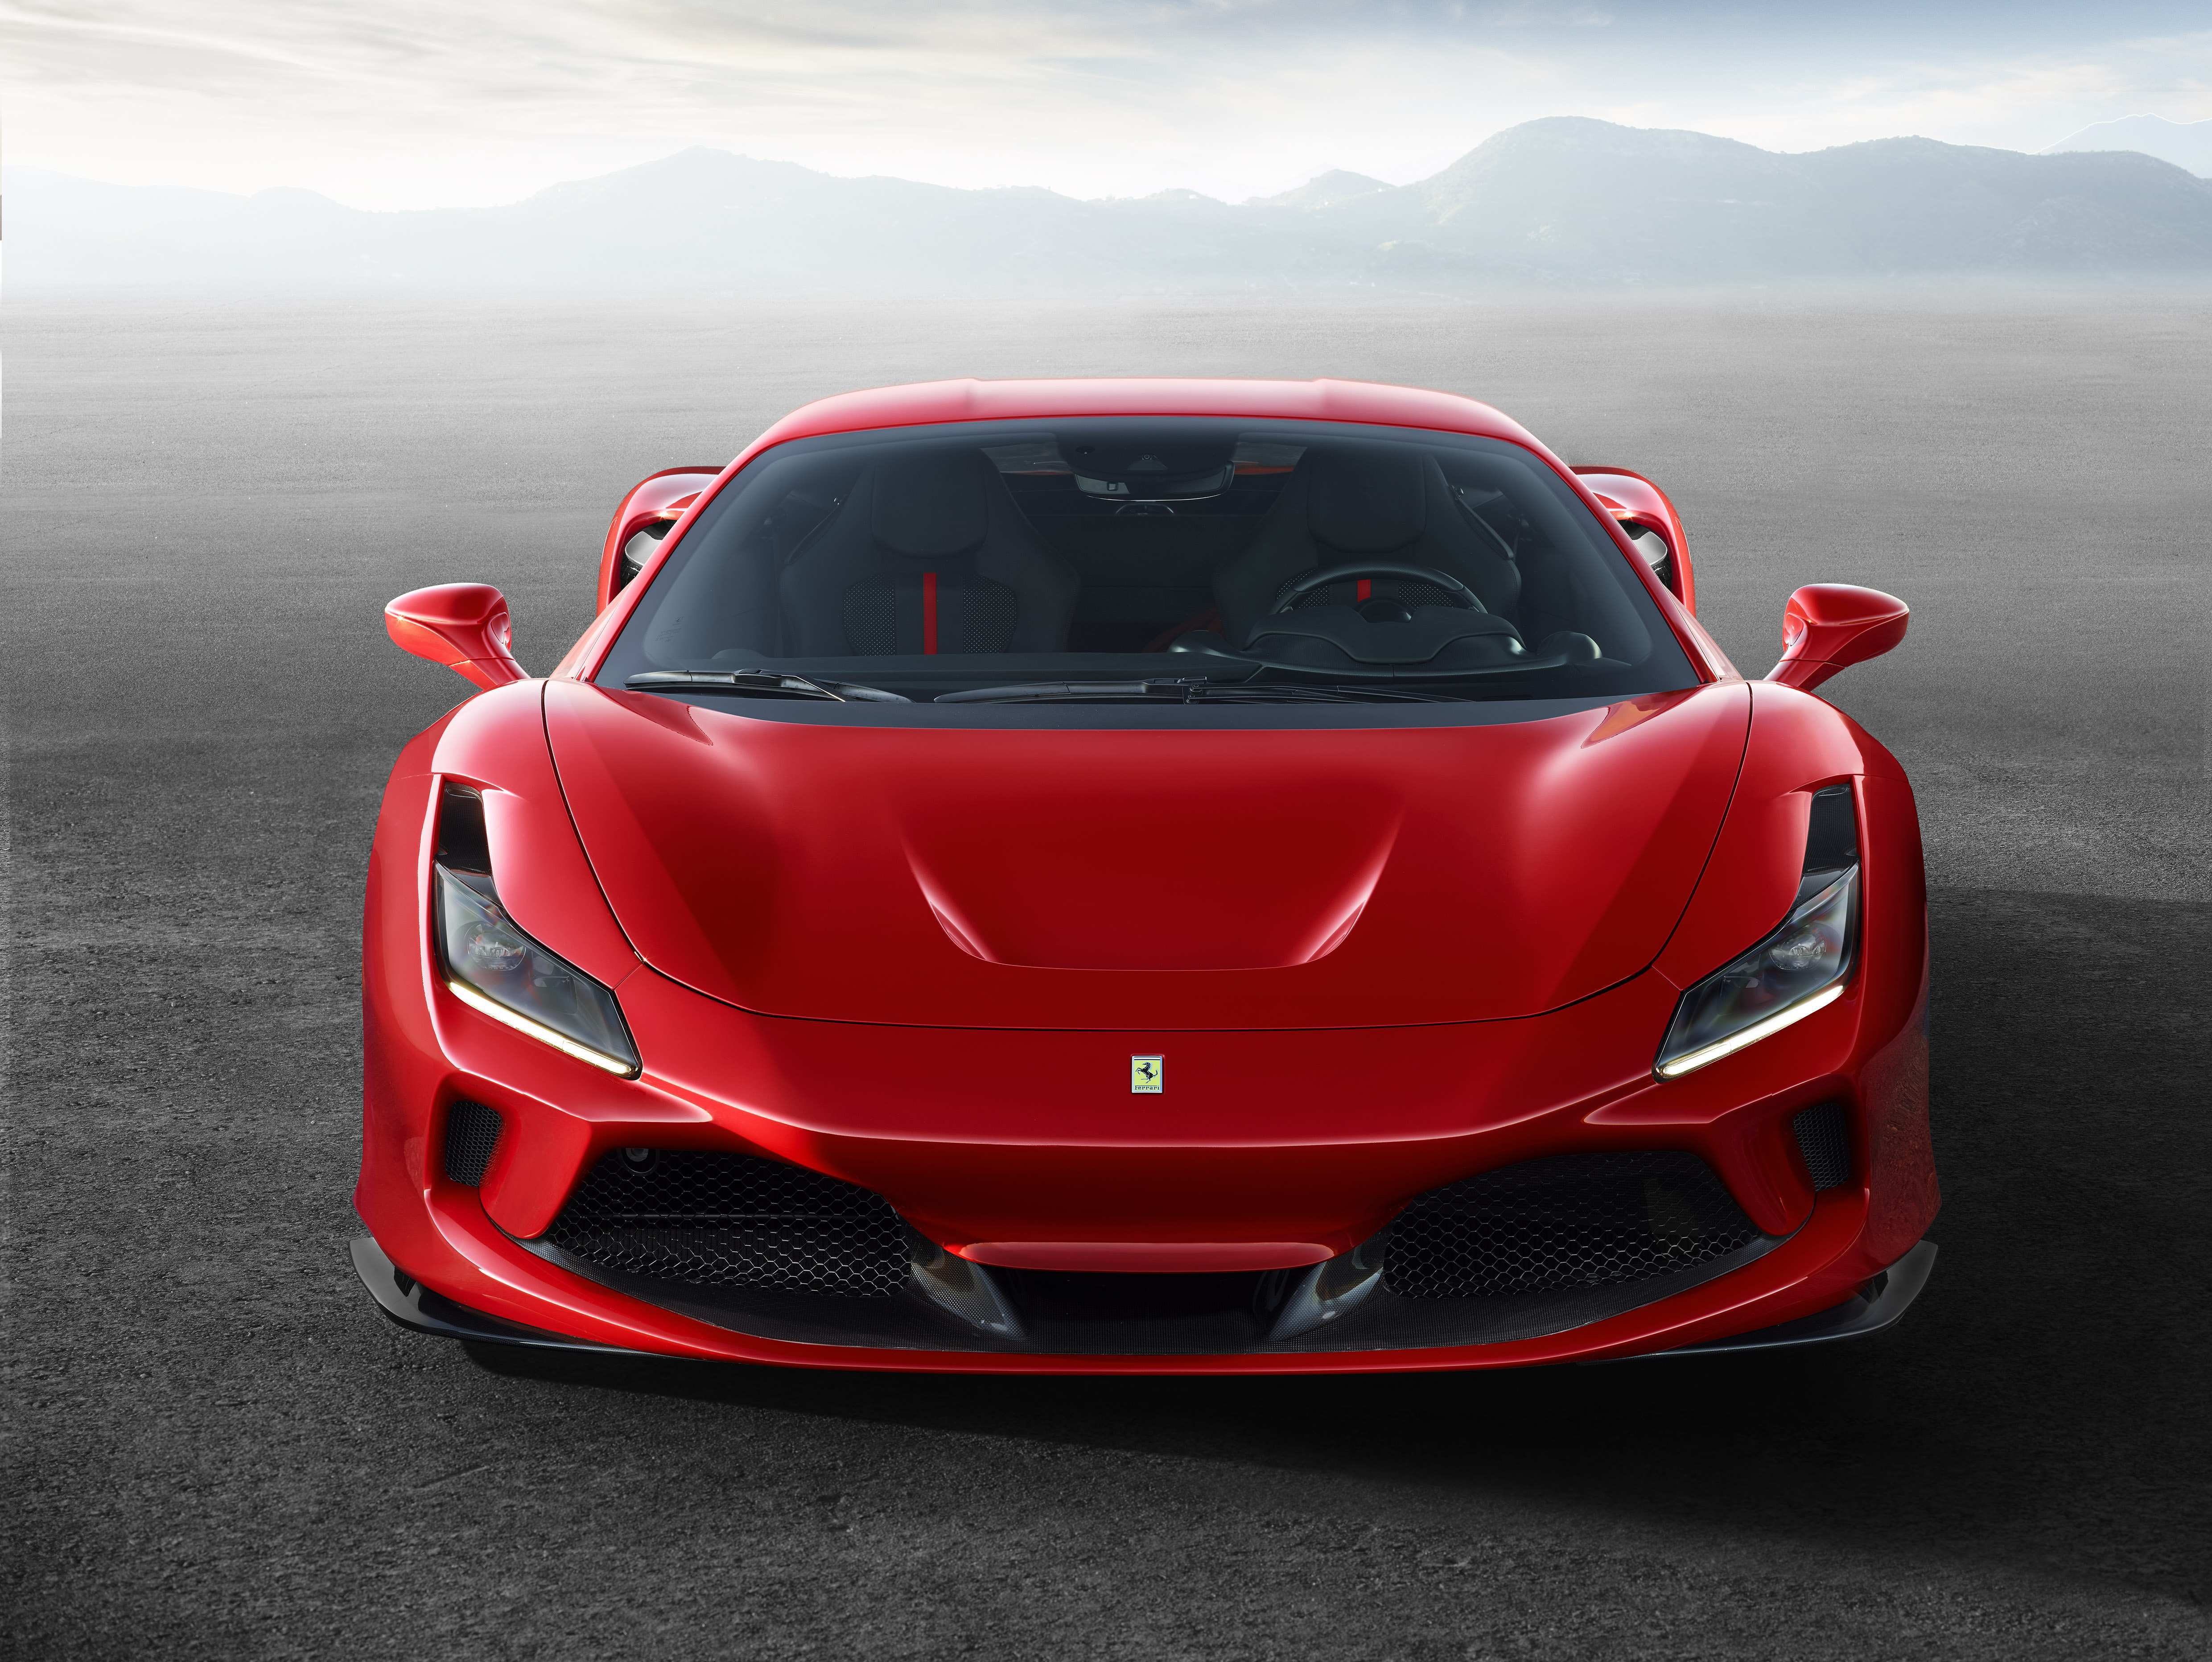 18 All New Ferrari 2020 Supercar Reviews